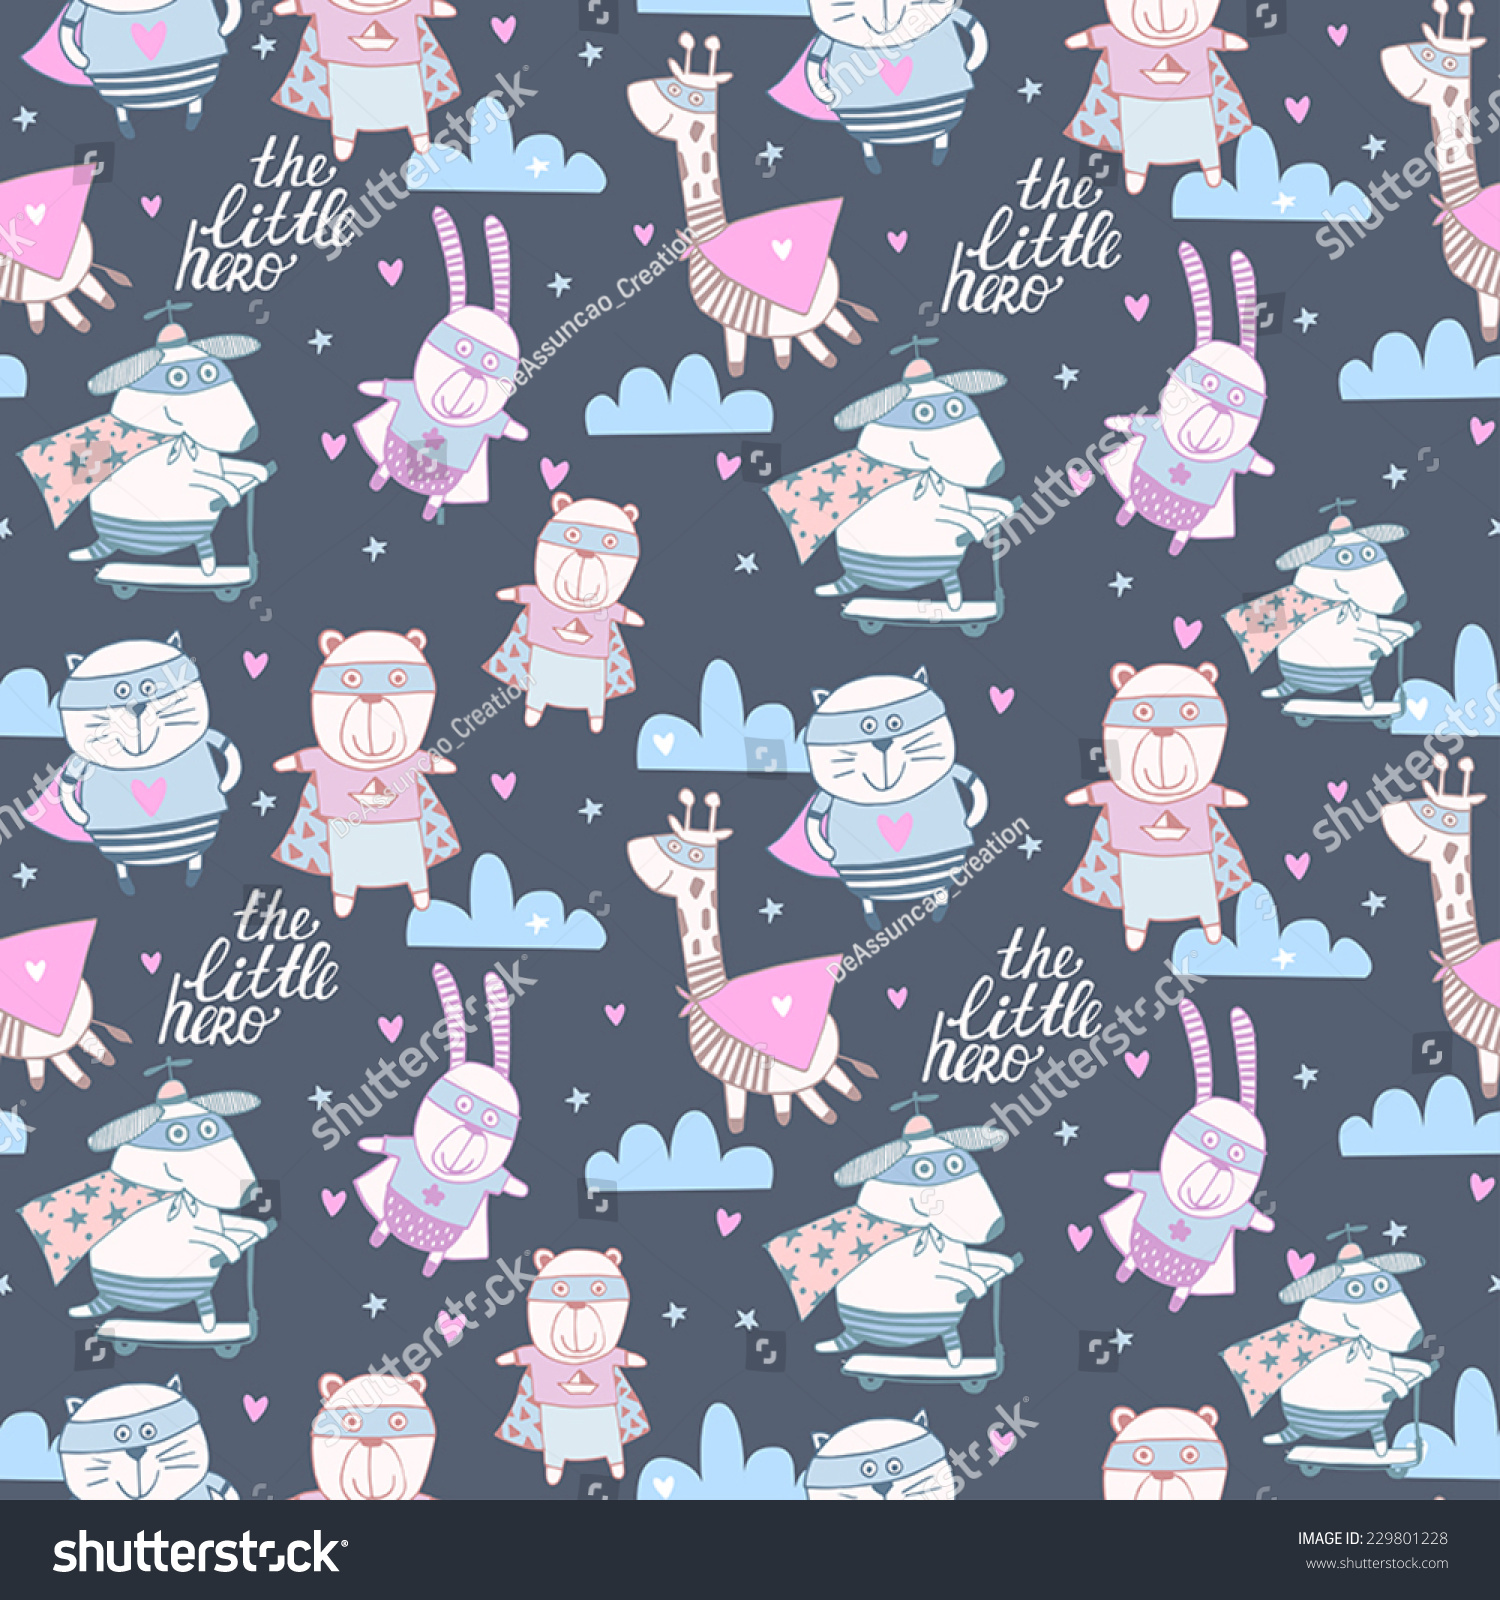 Cartoon animals in pastel colors childish set the little hero seamless background